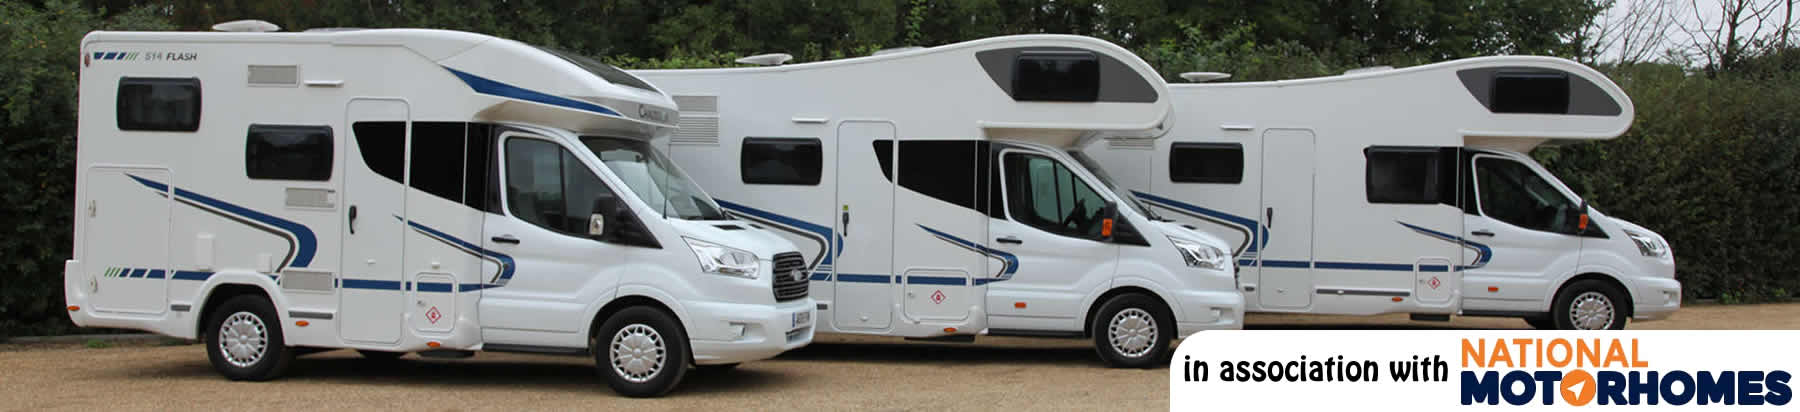 Chausson Flash 03 motorhome hired from the Cambridge depot